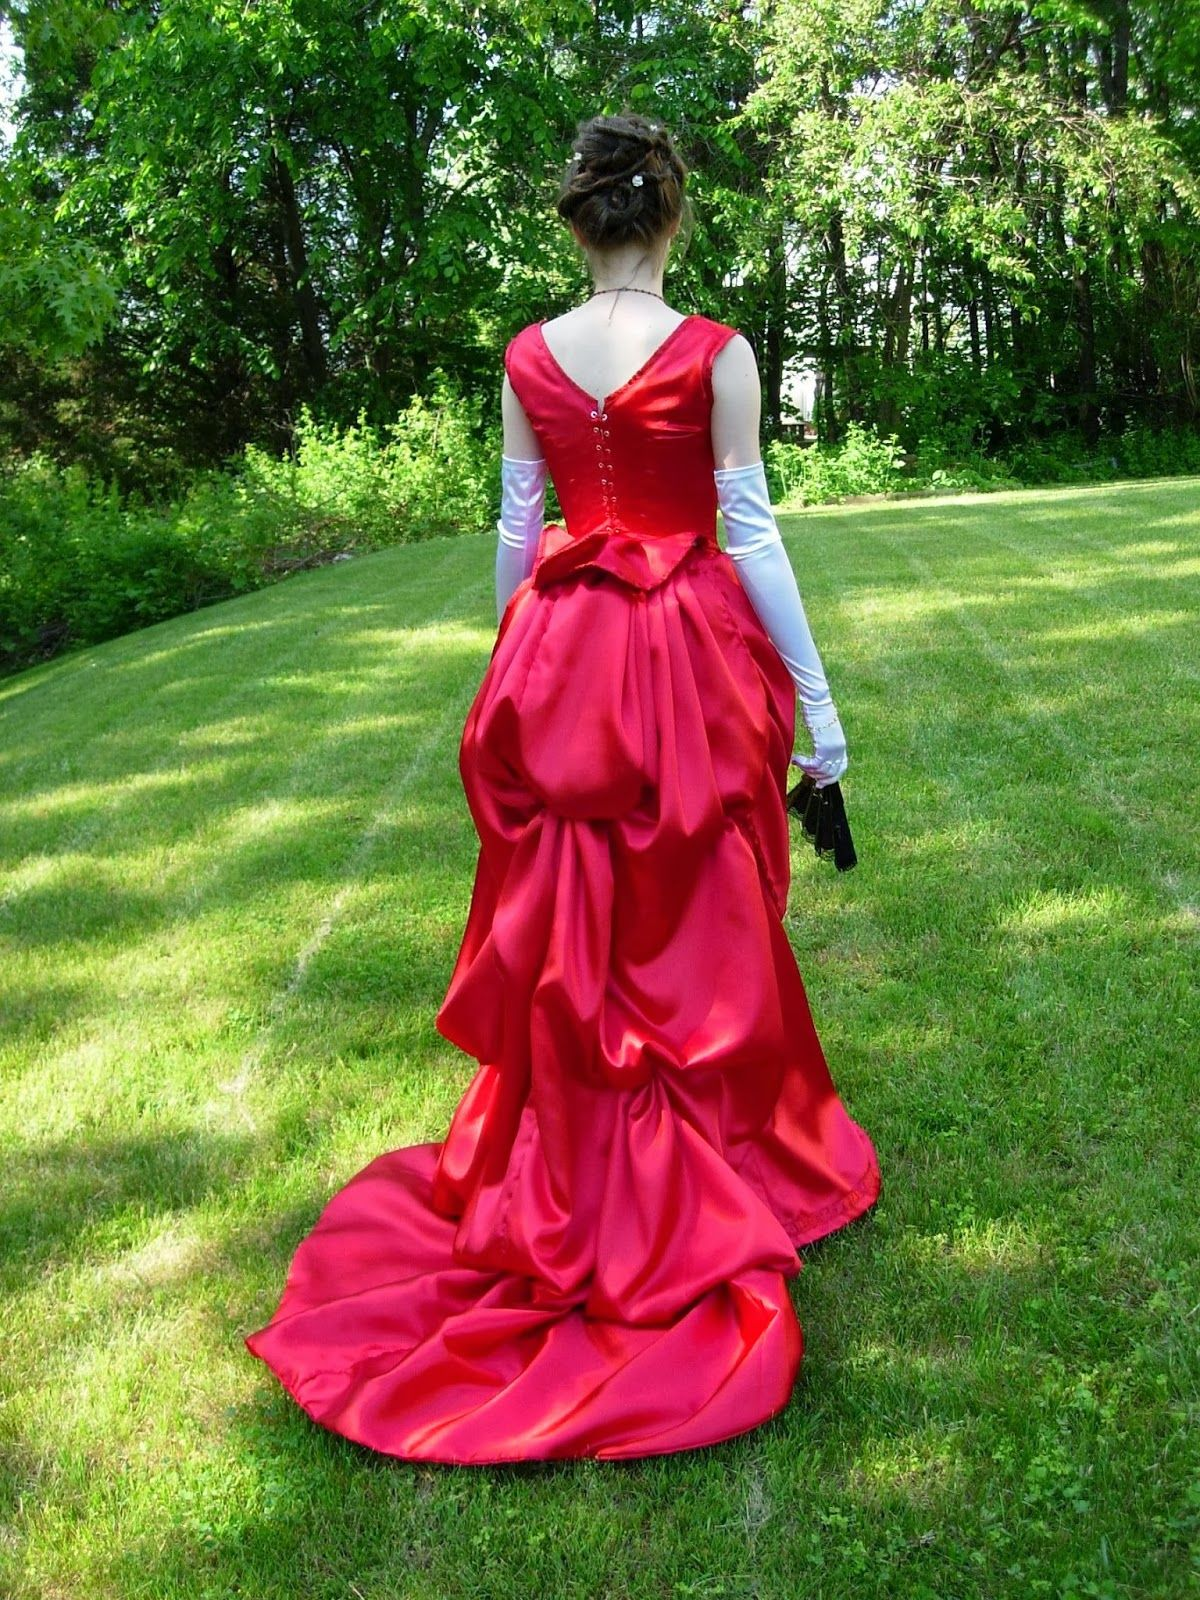 Another Victorian Bustle Gown Costume for Sale, Just in